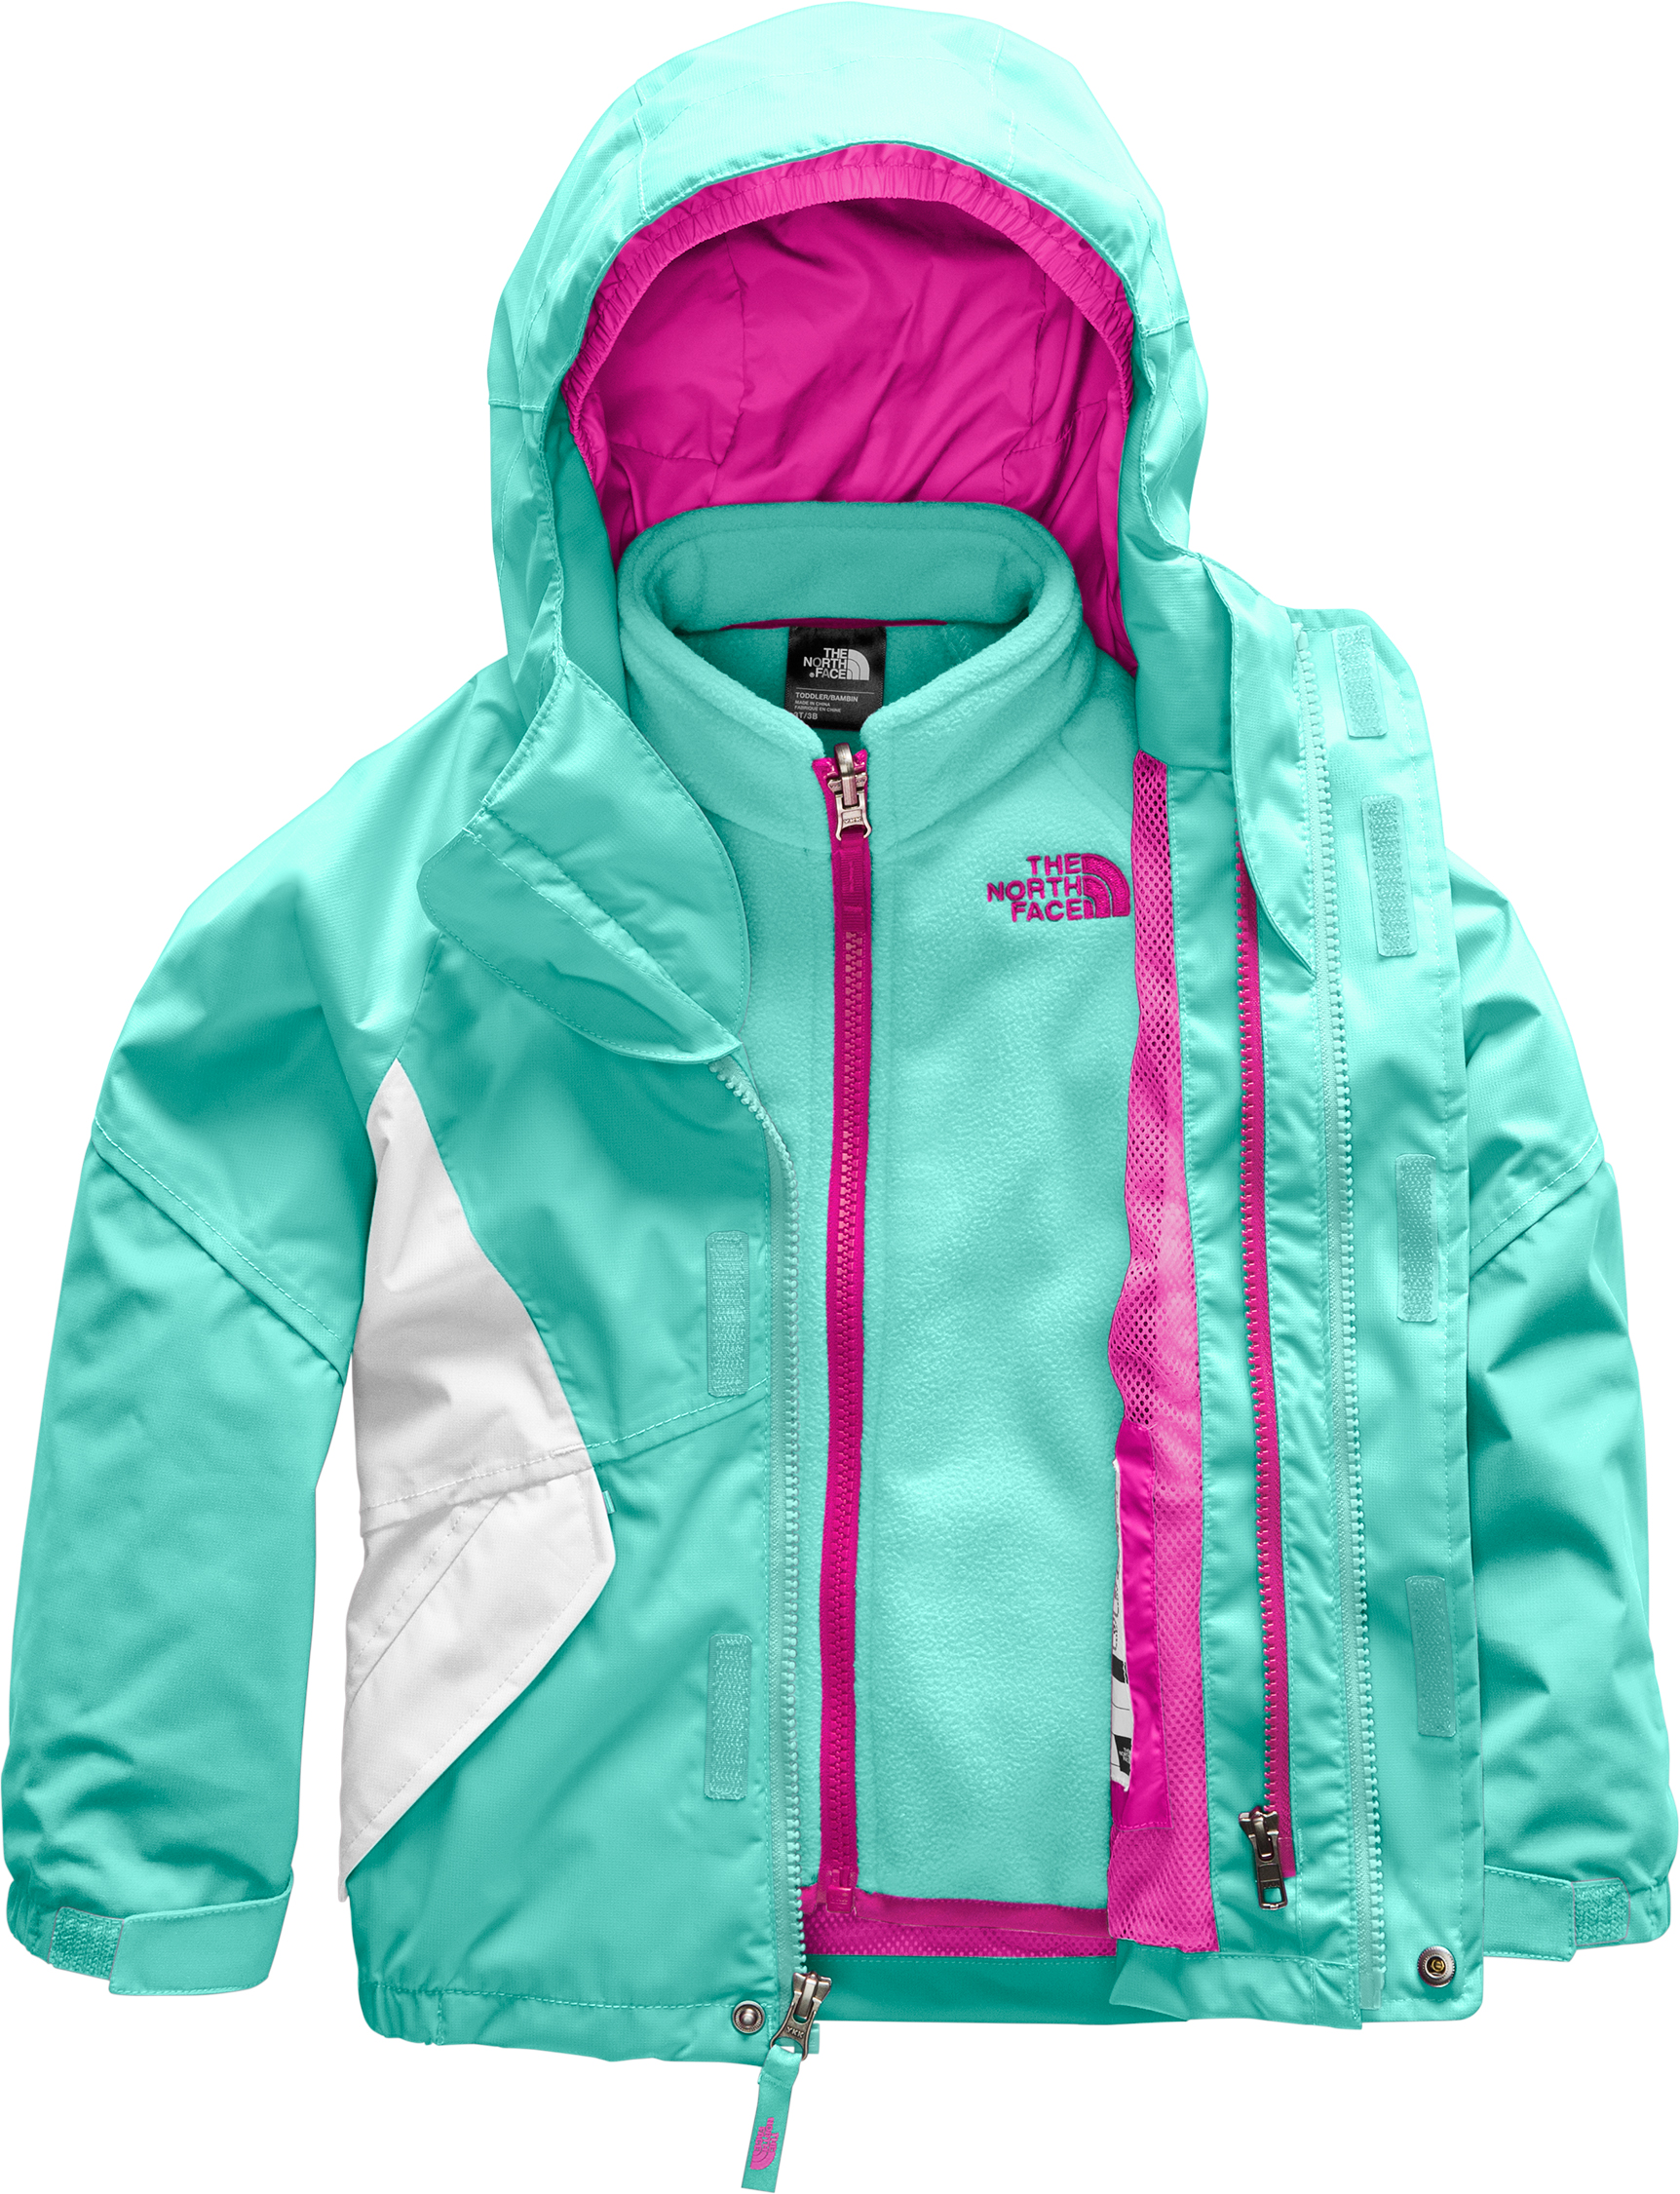 ce3e7b03b The North Face Kira Triclimate Jacket - Girls' - Infants to Children